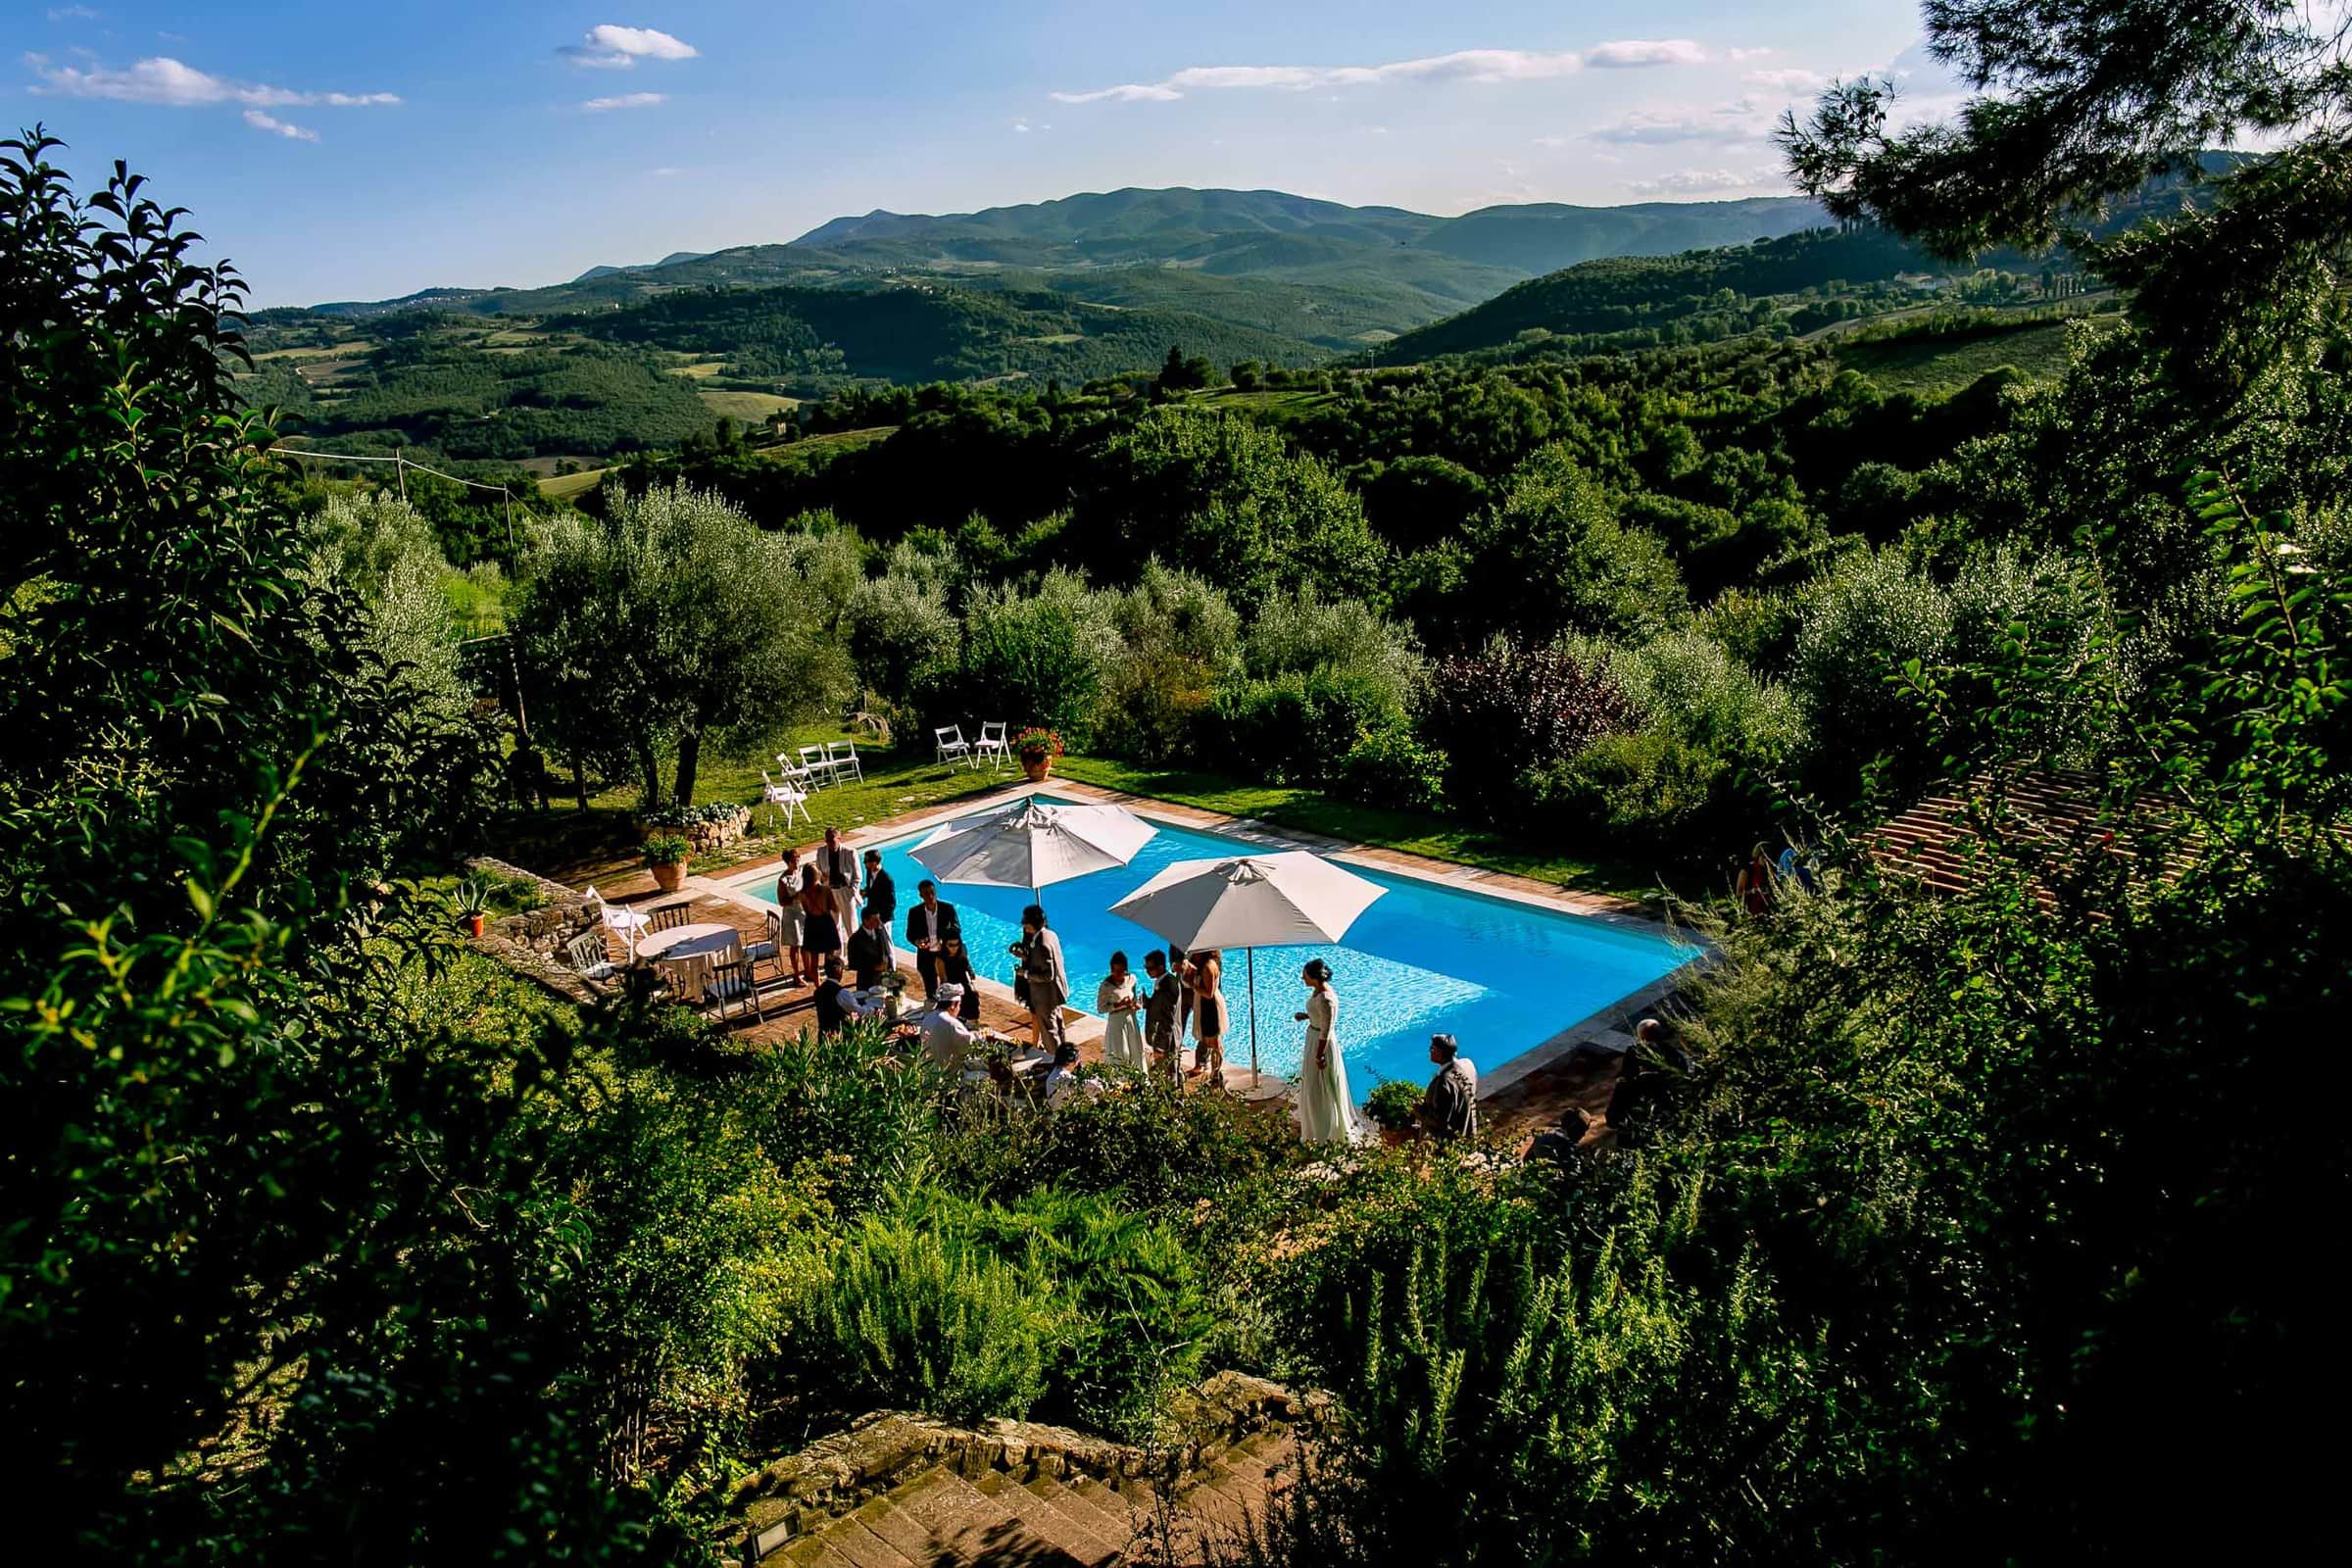 Pool party with family, friends and the bride and groom moments after a gorgeous Villa Tre Grazie wedding ceremony near Todi, Italy in Umbria.